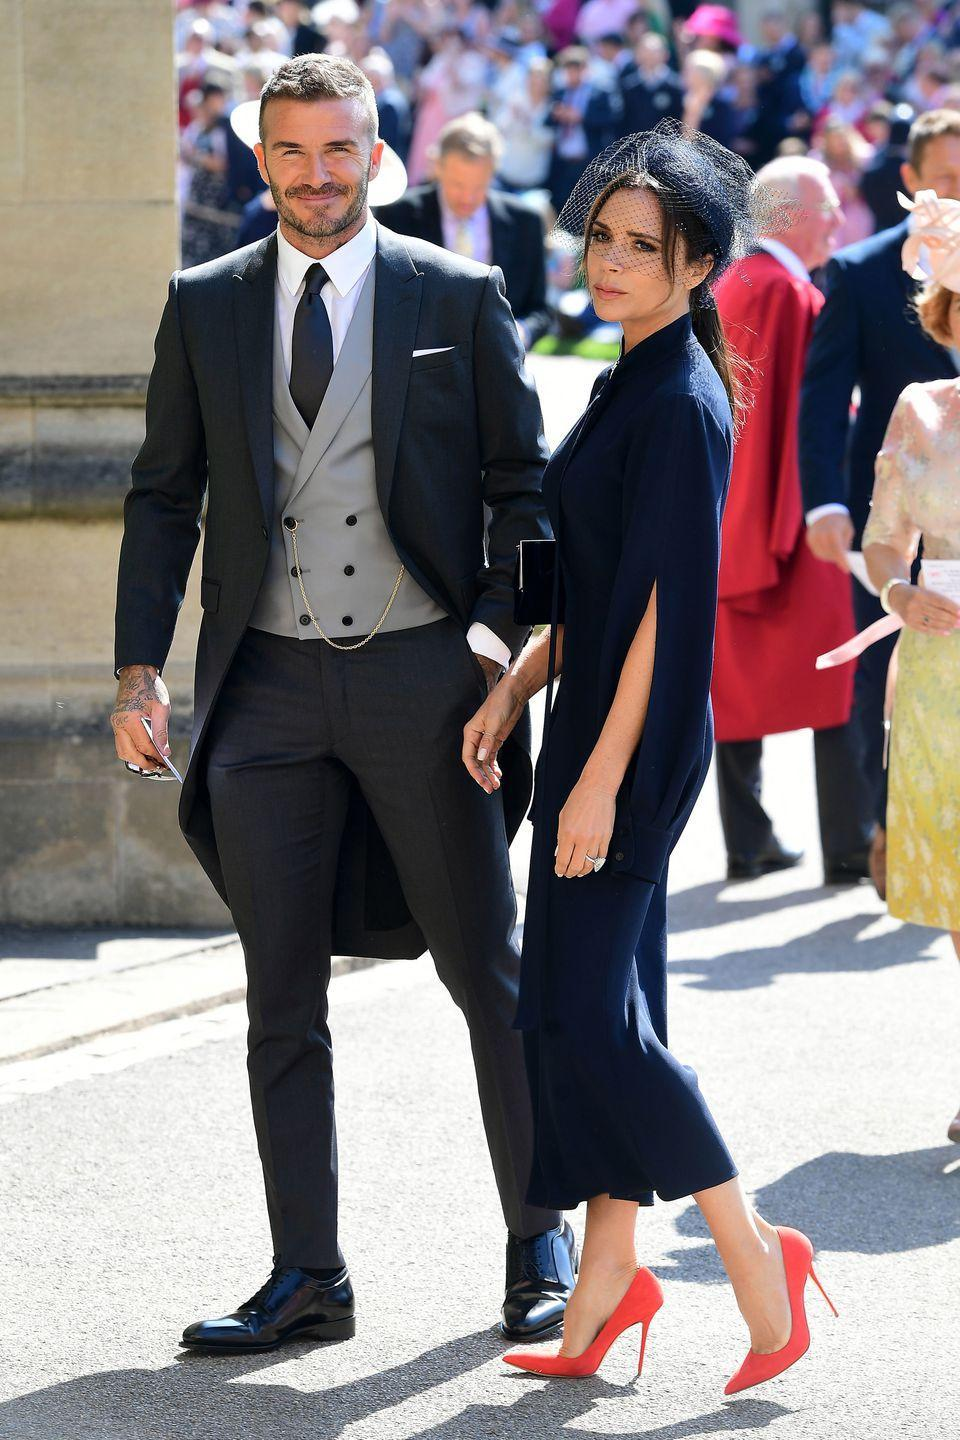 """<p>Posh and Becks attended both William and <a rel=""""nofollow noopener"""" href=""""https://www.townandcountrymag.com/society/tradition/g18737078/prince-harry-meghan-markle-royal-wedding-guest-list/"""" target=""""_blank"""" data-ylk=""""slk:Harry's"""" class=""""link rapid-noclick-resp"""">Harry's </a>weddings, so it's likely that we'll see them again in October. In addition to the family's ties to the royals, the Beckham's wedding planner is also <a rel=""""nofollow noopener"""" href=""""https://www.thetimes.co.uk/edition/news/princess-eugenie-and-jack-brooksbank-to-wed-it-like-beckham-in-two-day-bash-kdnhgszhc"""" target=""""_blank"""" data-ylk=""""slk:reportedly"""" class=""""link rapid-noclick-resp"""">reportedly</a> helping with Princess Eugenie and Jack Brooksbank's big day. </p>"""